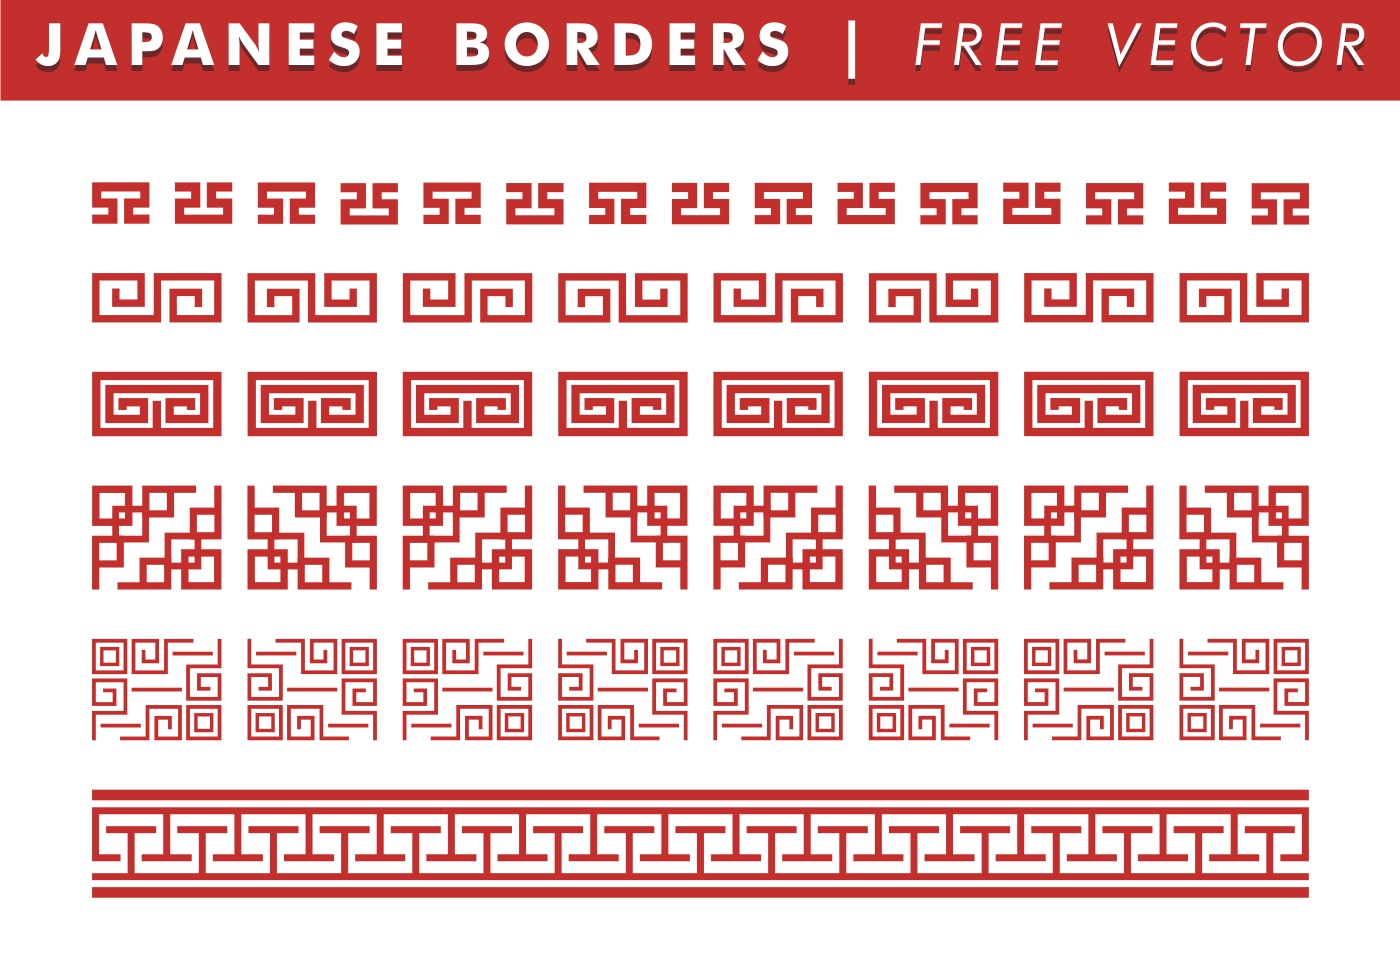 Chinese Calligraphy Wallpaper Hd Chinese Border Free Vector Art 9 426 Free Downloads